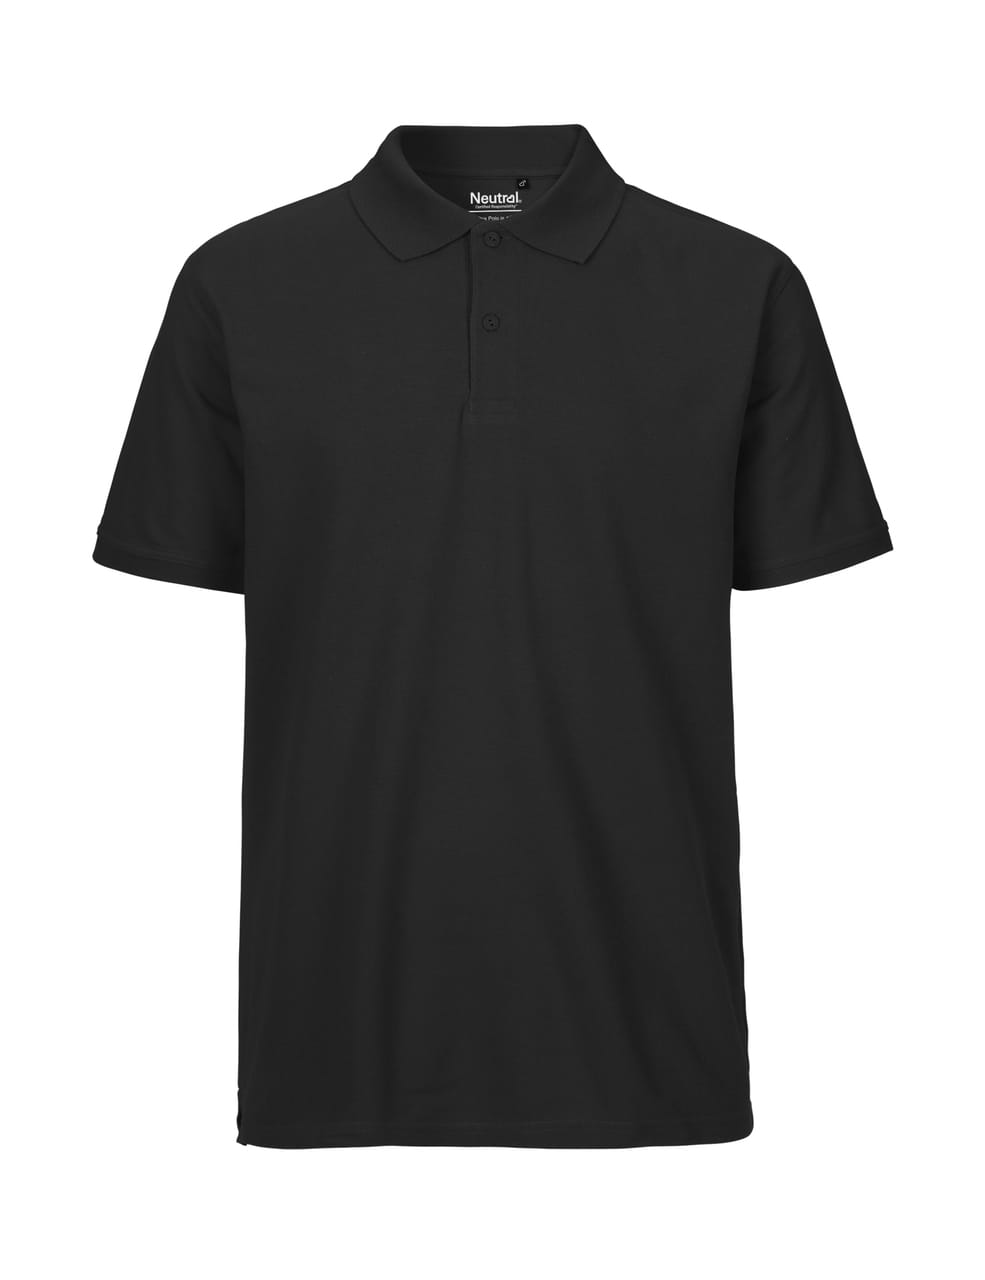 Neutral mens ss polo